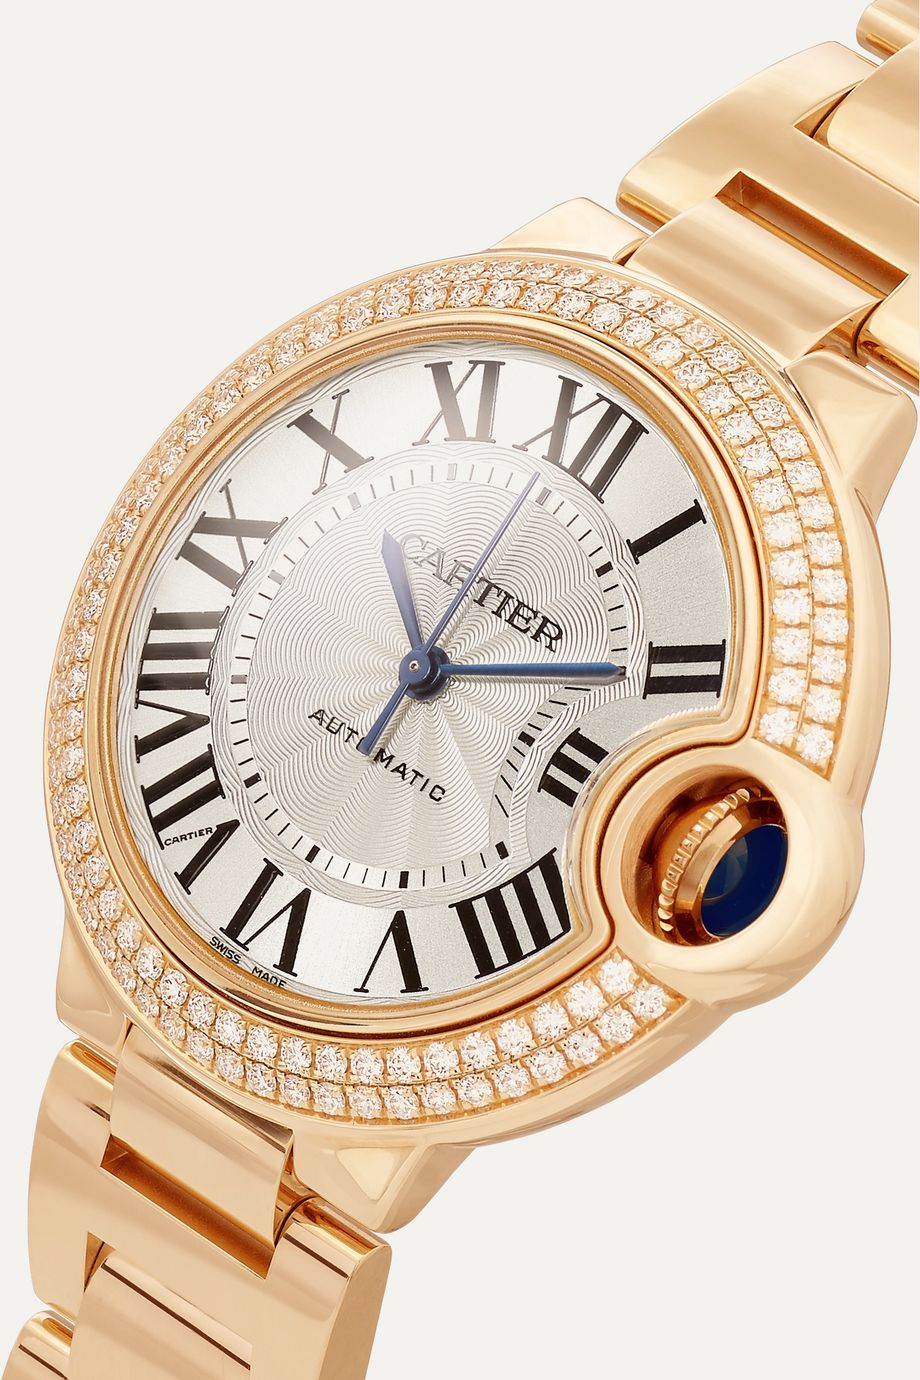 Cartier Montre en or rose 18 carats et diamants Ballon Bleu de Cartier 33 mm